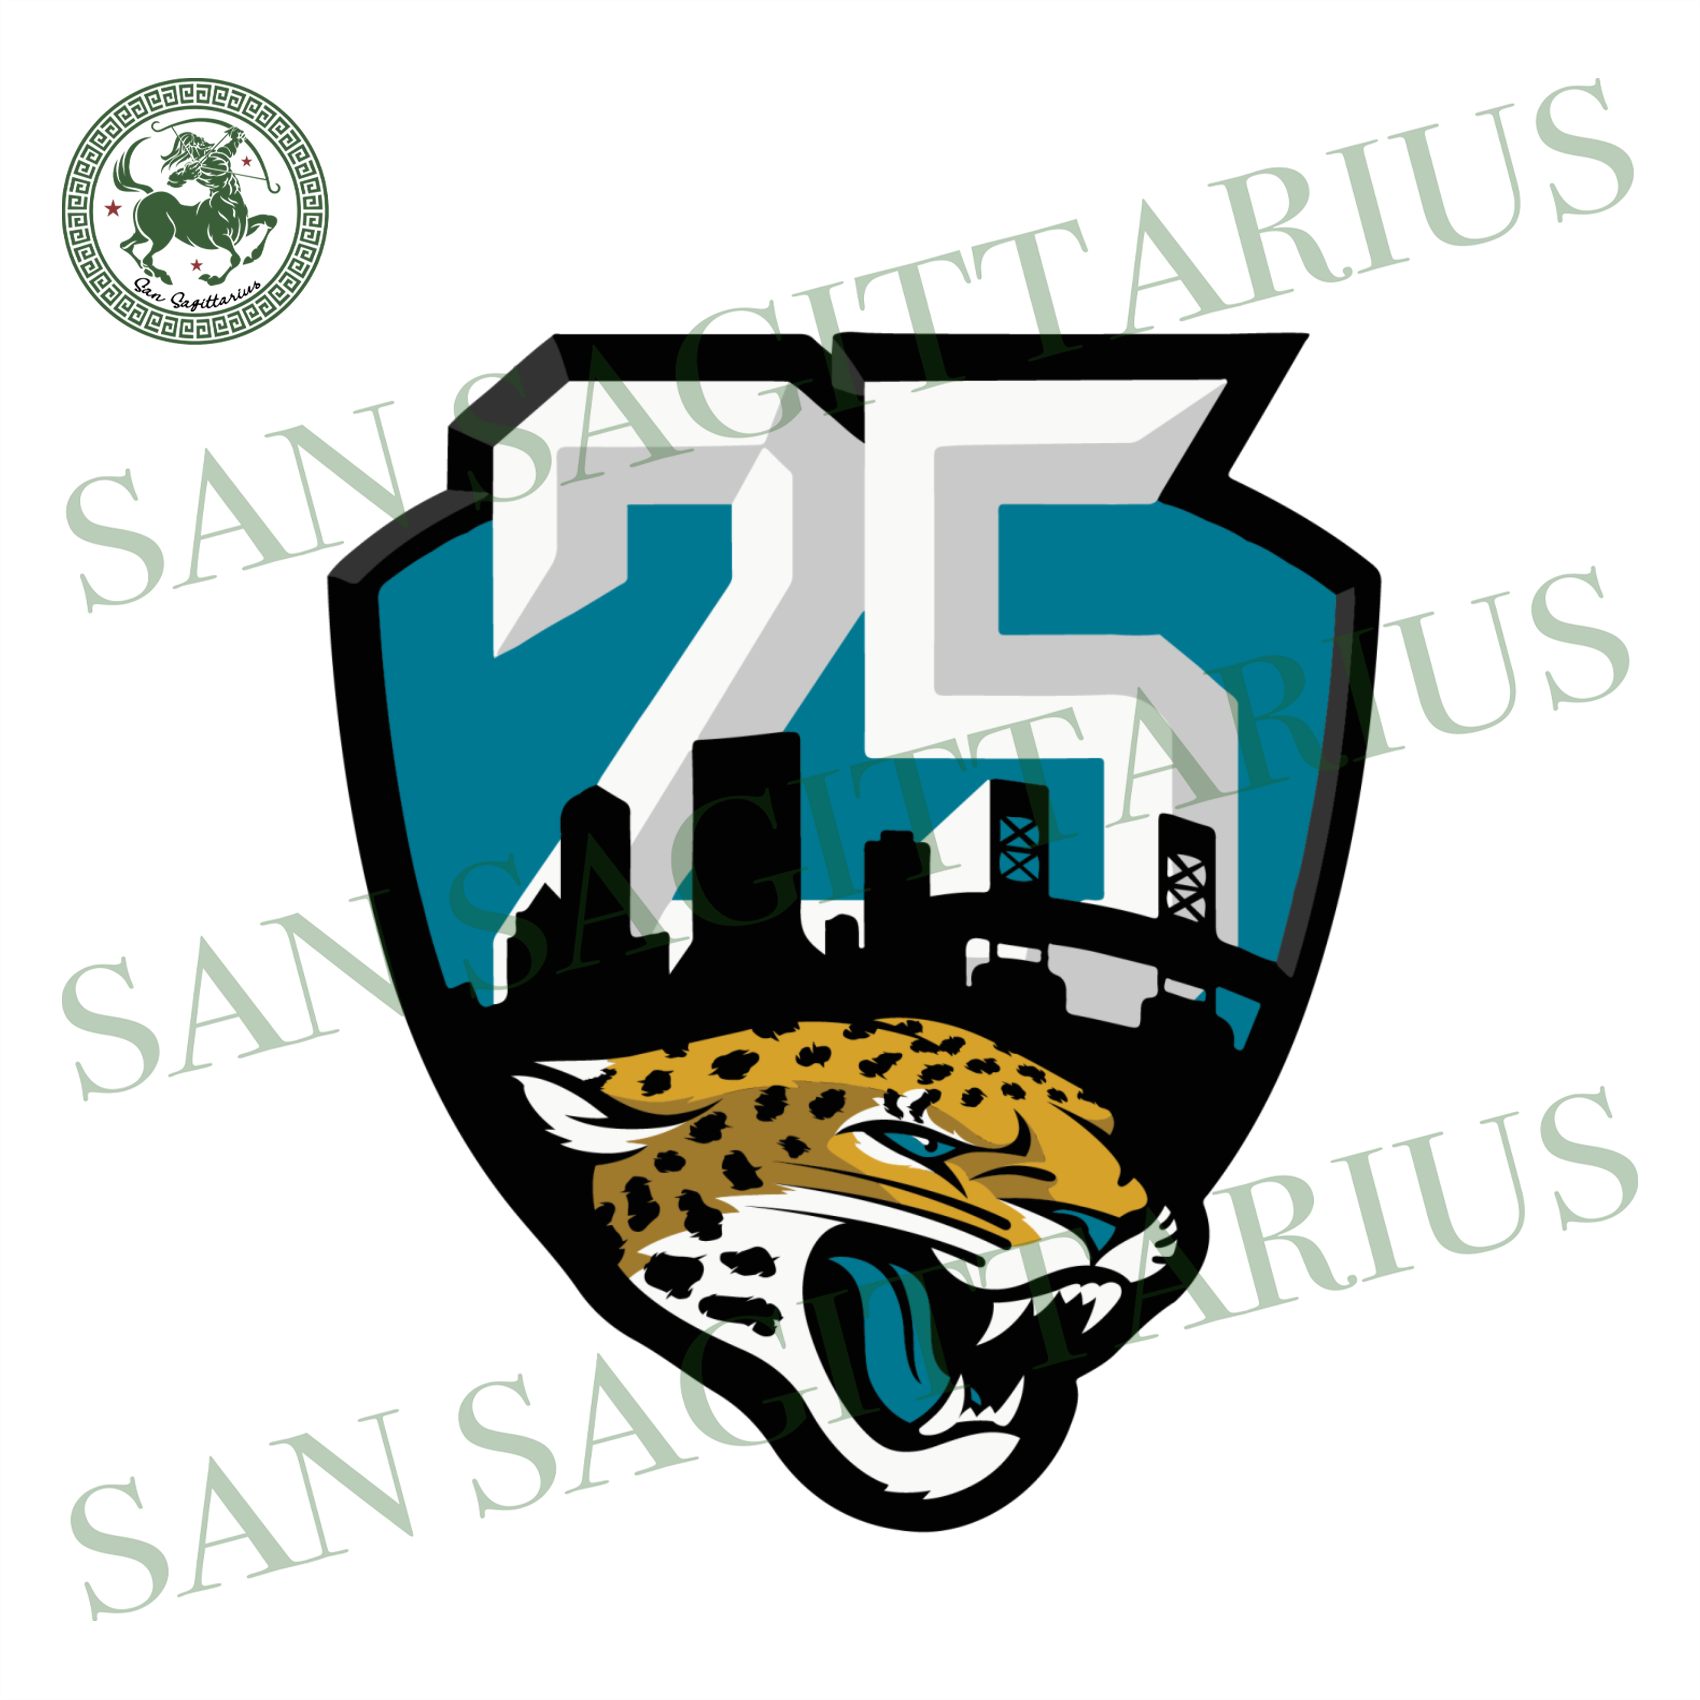 25 Jacksonville Jaguars Svg, Panther Jaguars Svg, Nfl Svg, Jaguars Svg, Football Svg, Baseball Svg, Jaguars Lover Svg, Jaguars Fan Gifts Svg, Jacksonville Jaguars Svg, Football League Svg, Sp